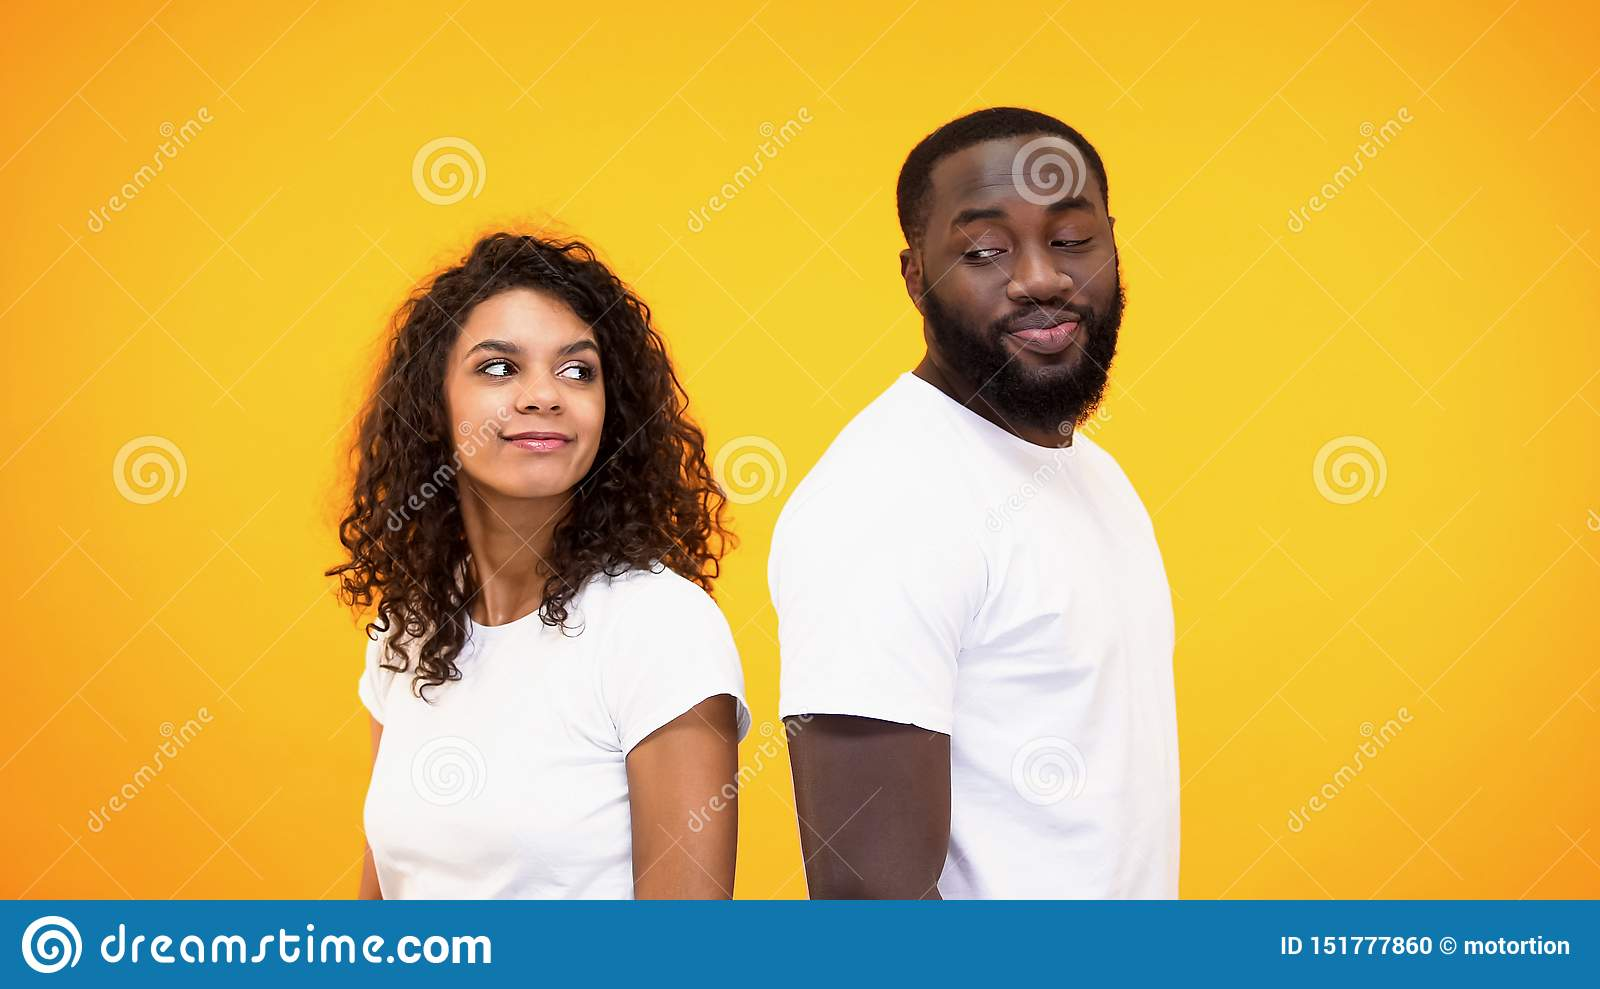 Young Black Man And Woman Looking Each Other Standing Back To Back